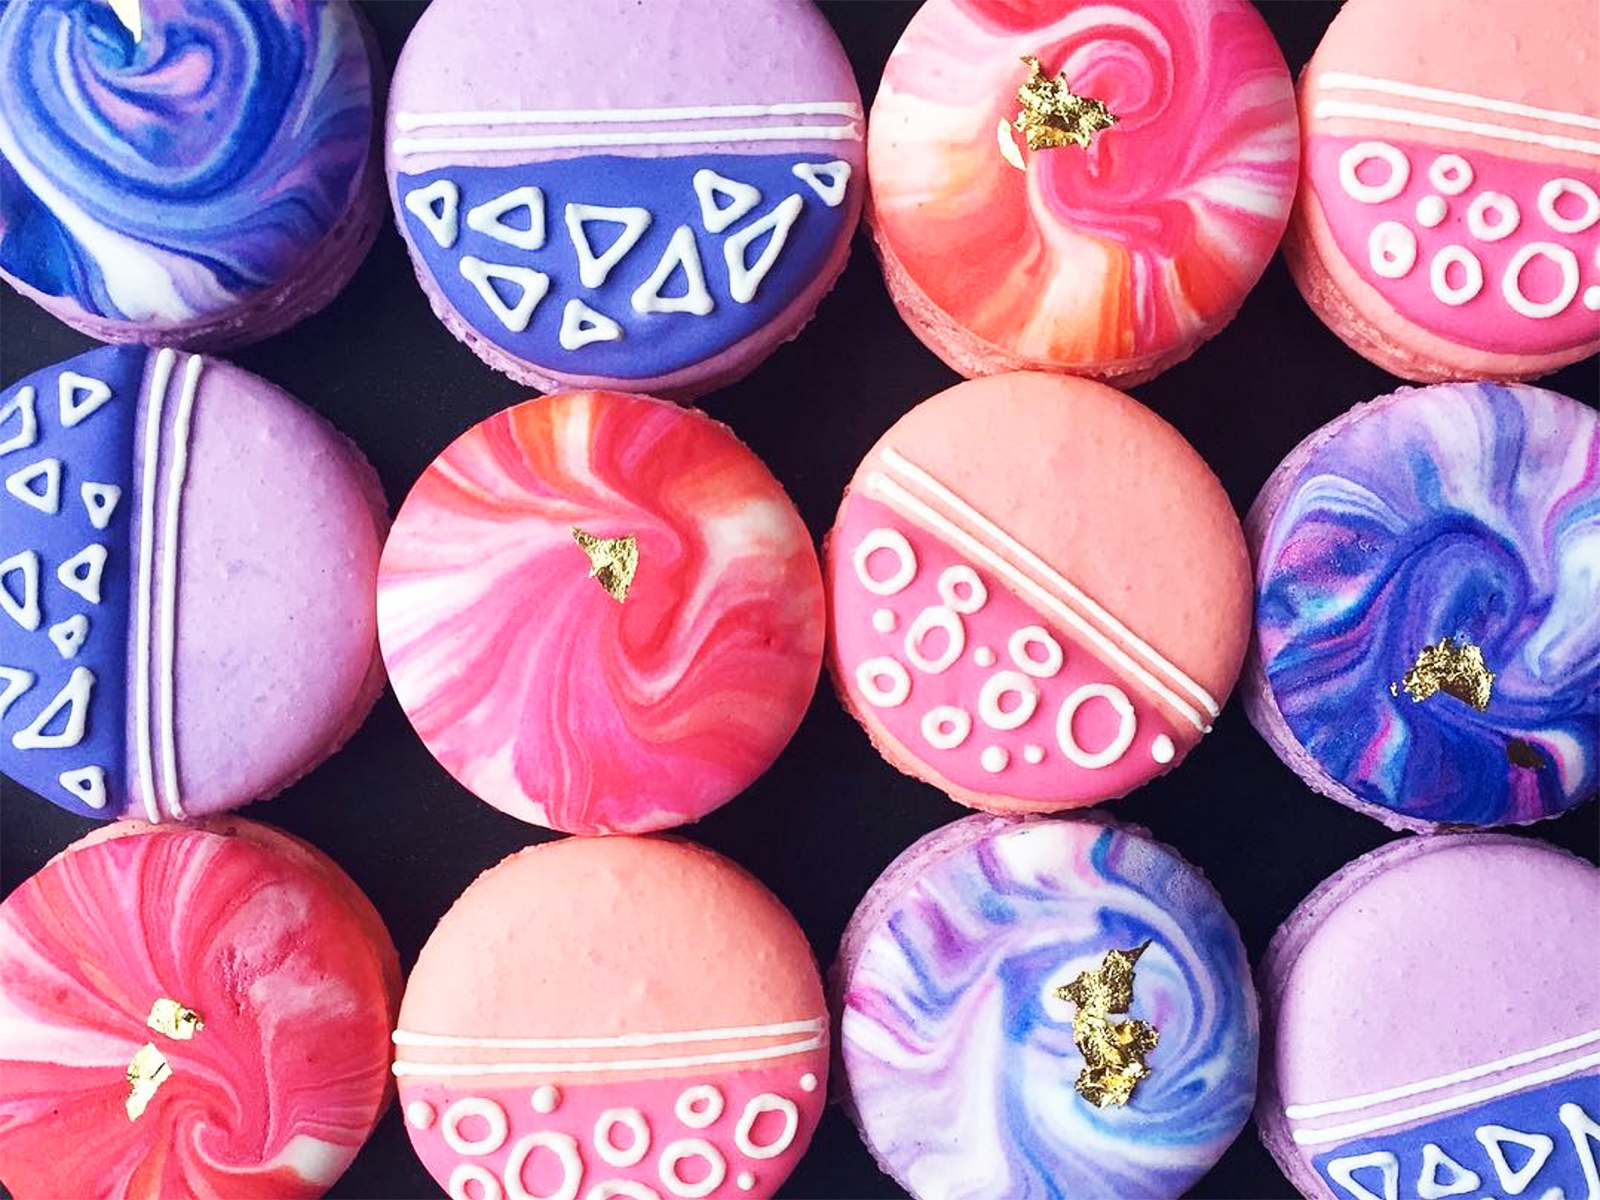 13 Macaron Artists You Should Be Following on Instagram